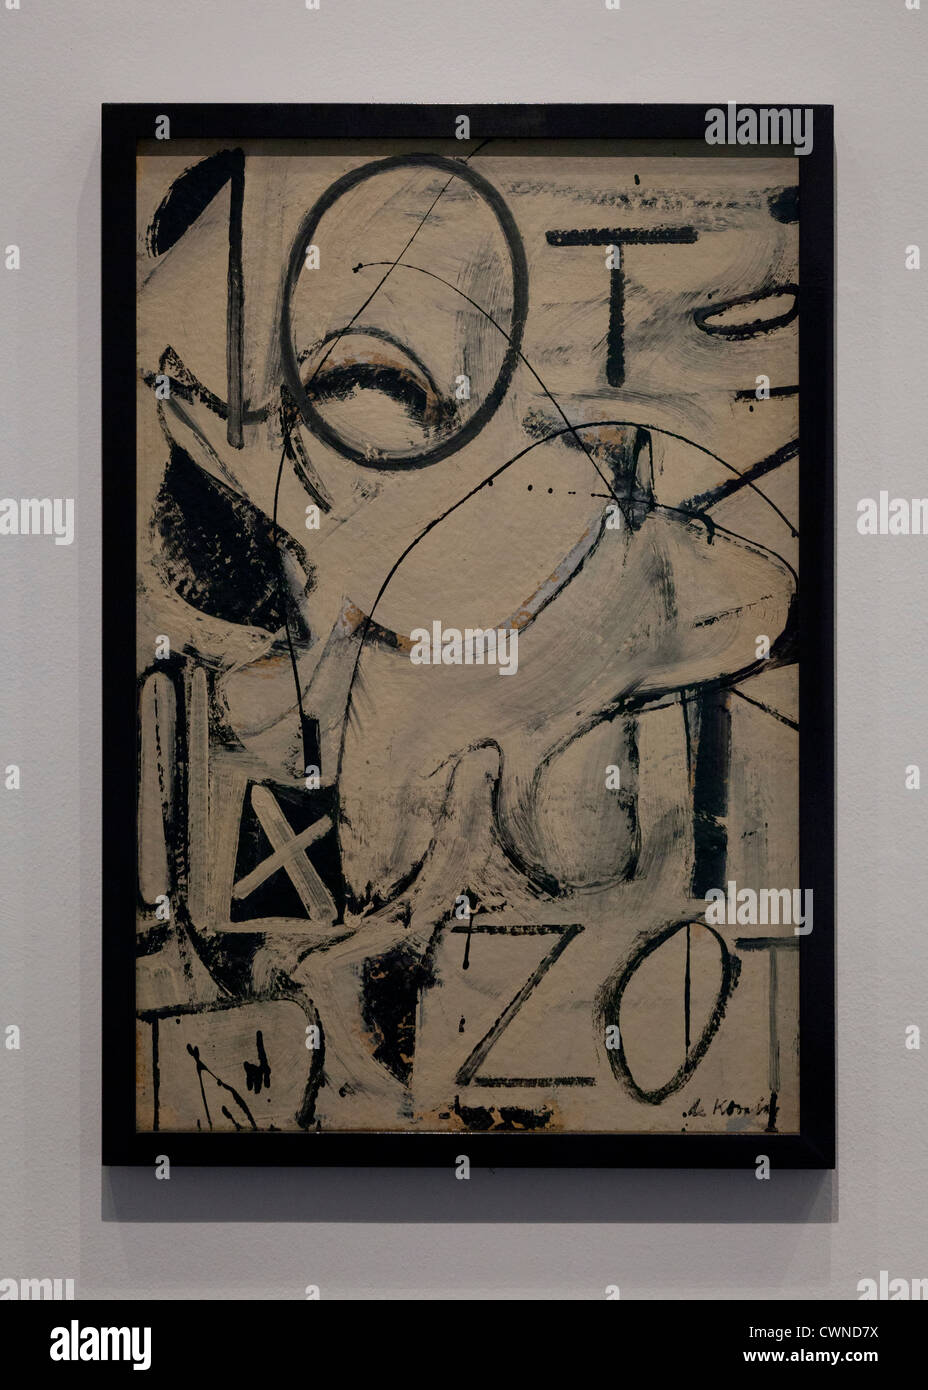 'Zurich' by Willem de Kooning, 1947 - Smithsonian, National Gallery of Art - Washington, DC USA - Stock Image